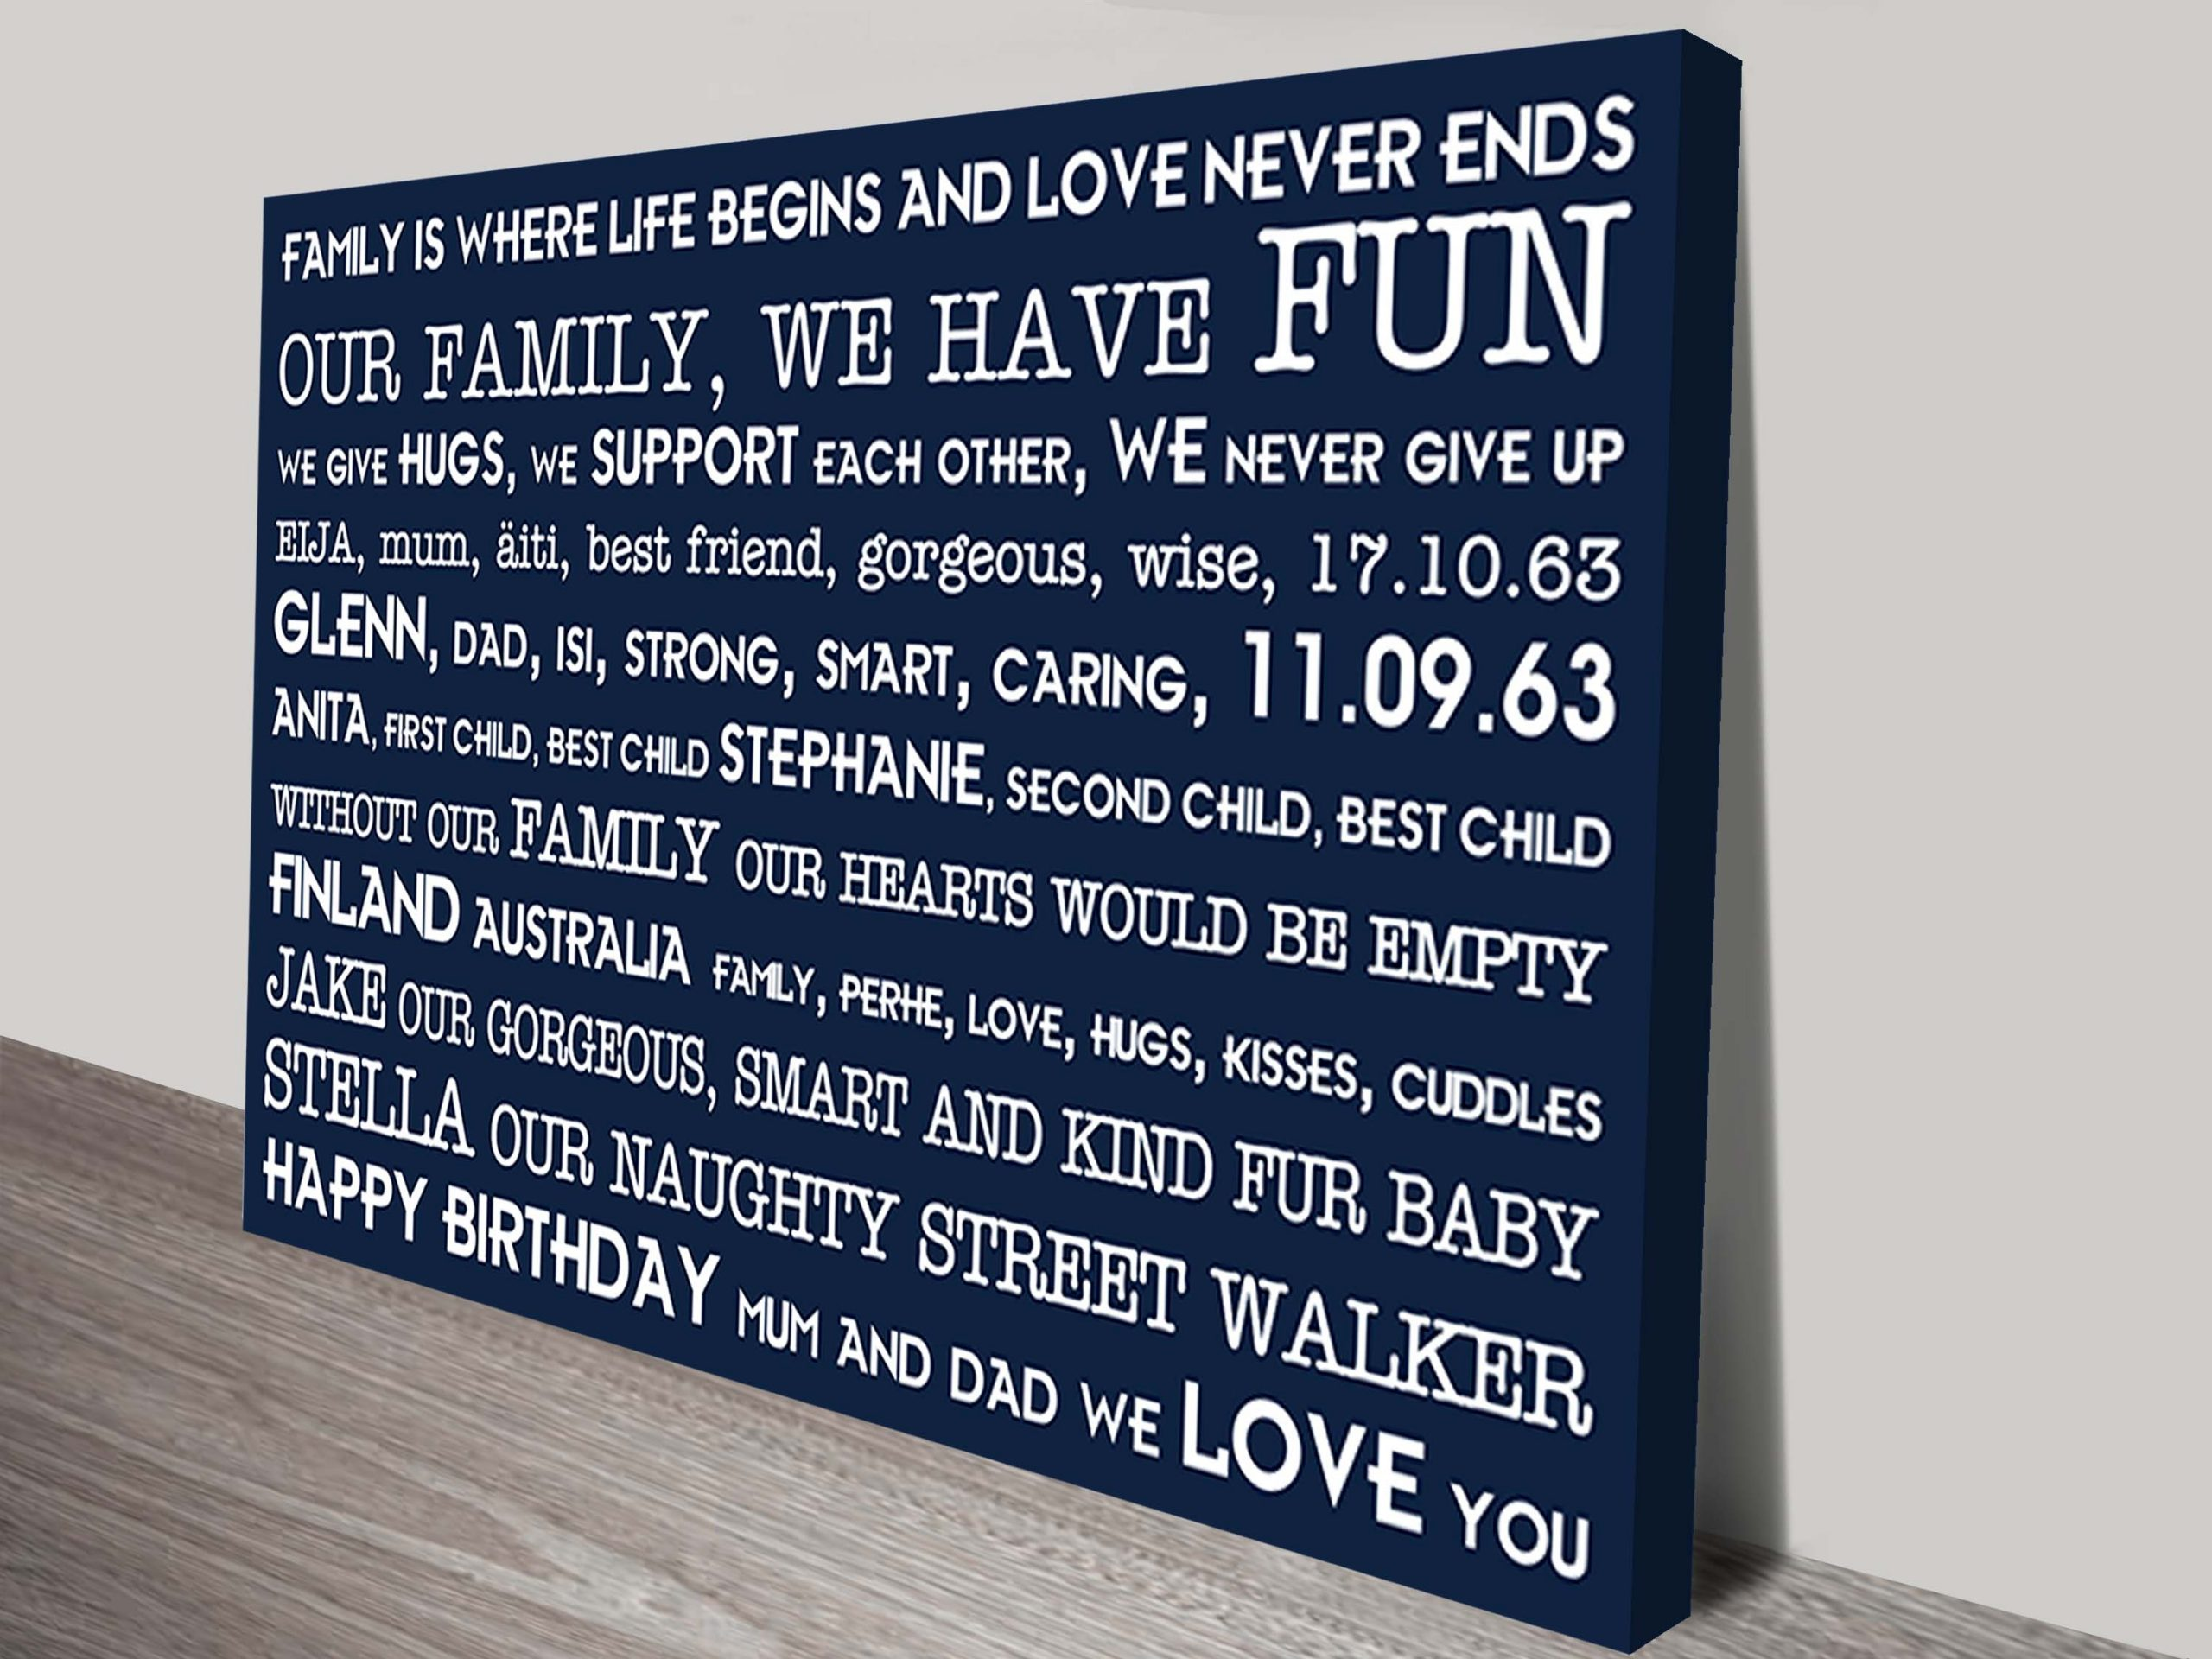 Personalised Art Present Idea | Love Never Ends